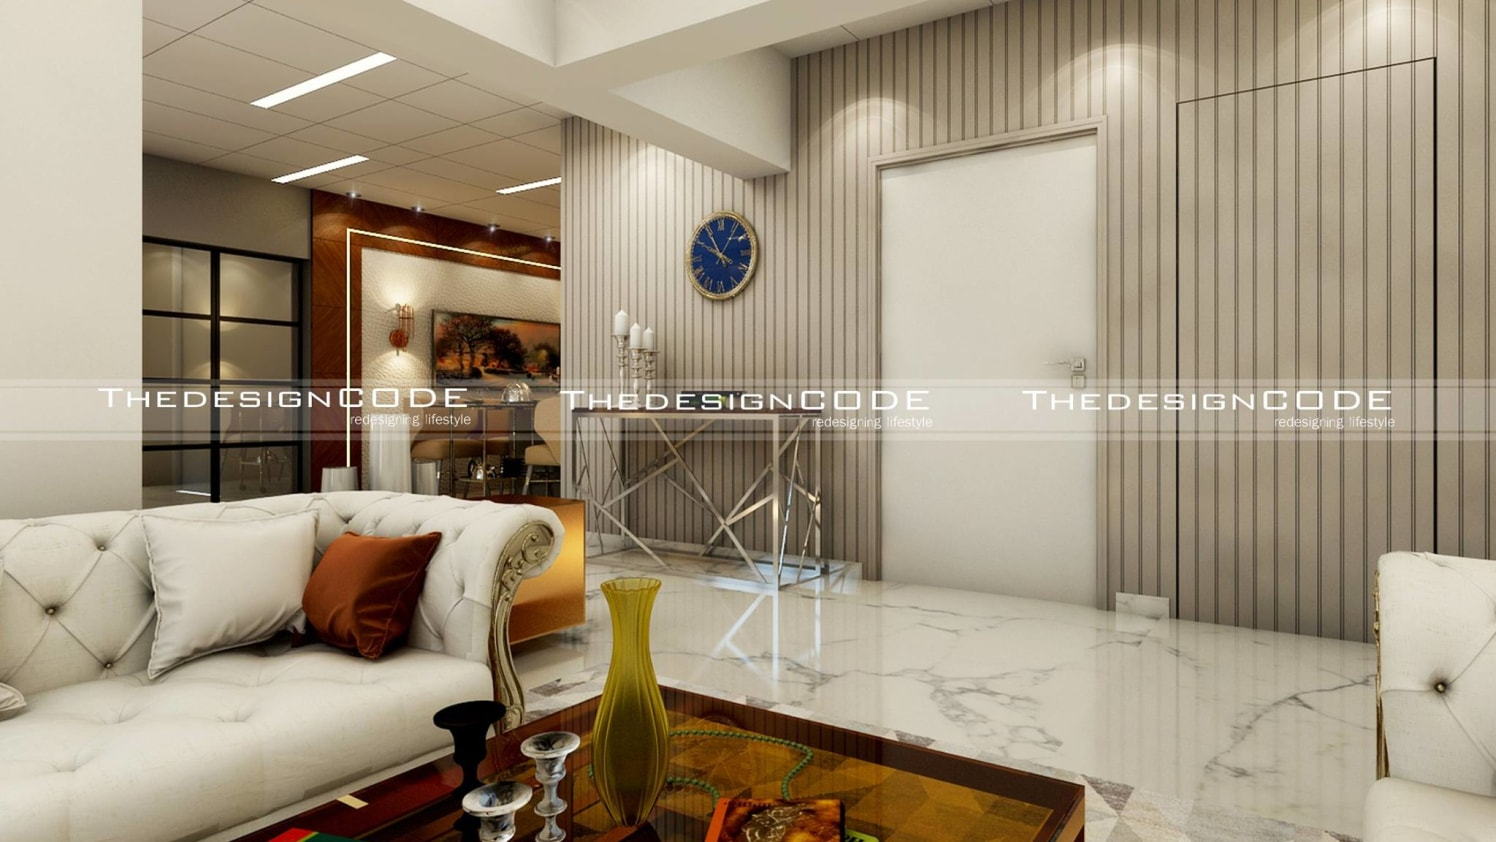 Living Room With Marble Flooring by Prashant jain Living-room Contemporary | Interior Design Photos & Ideas